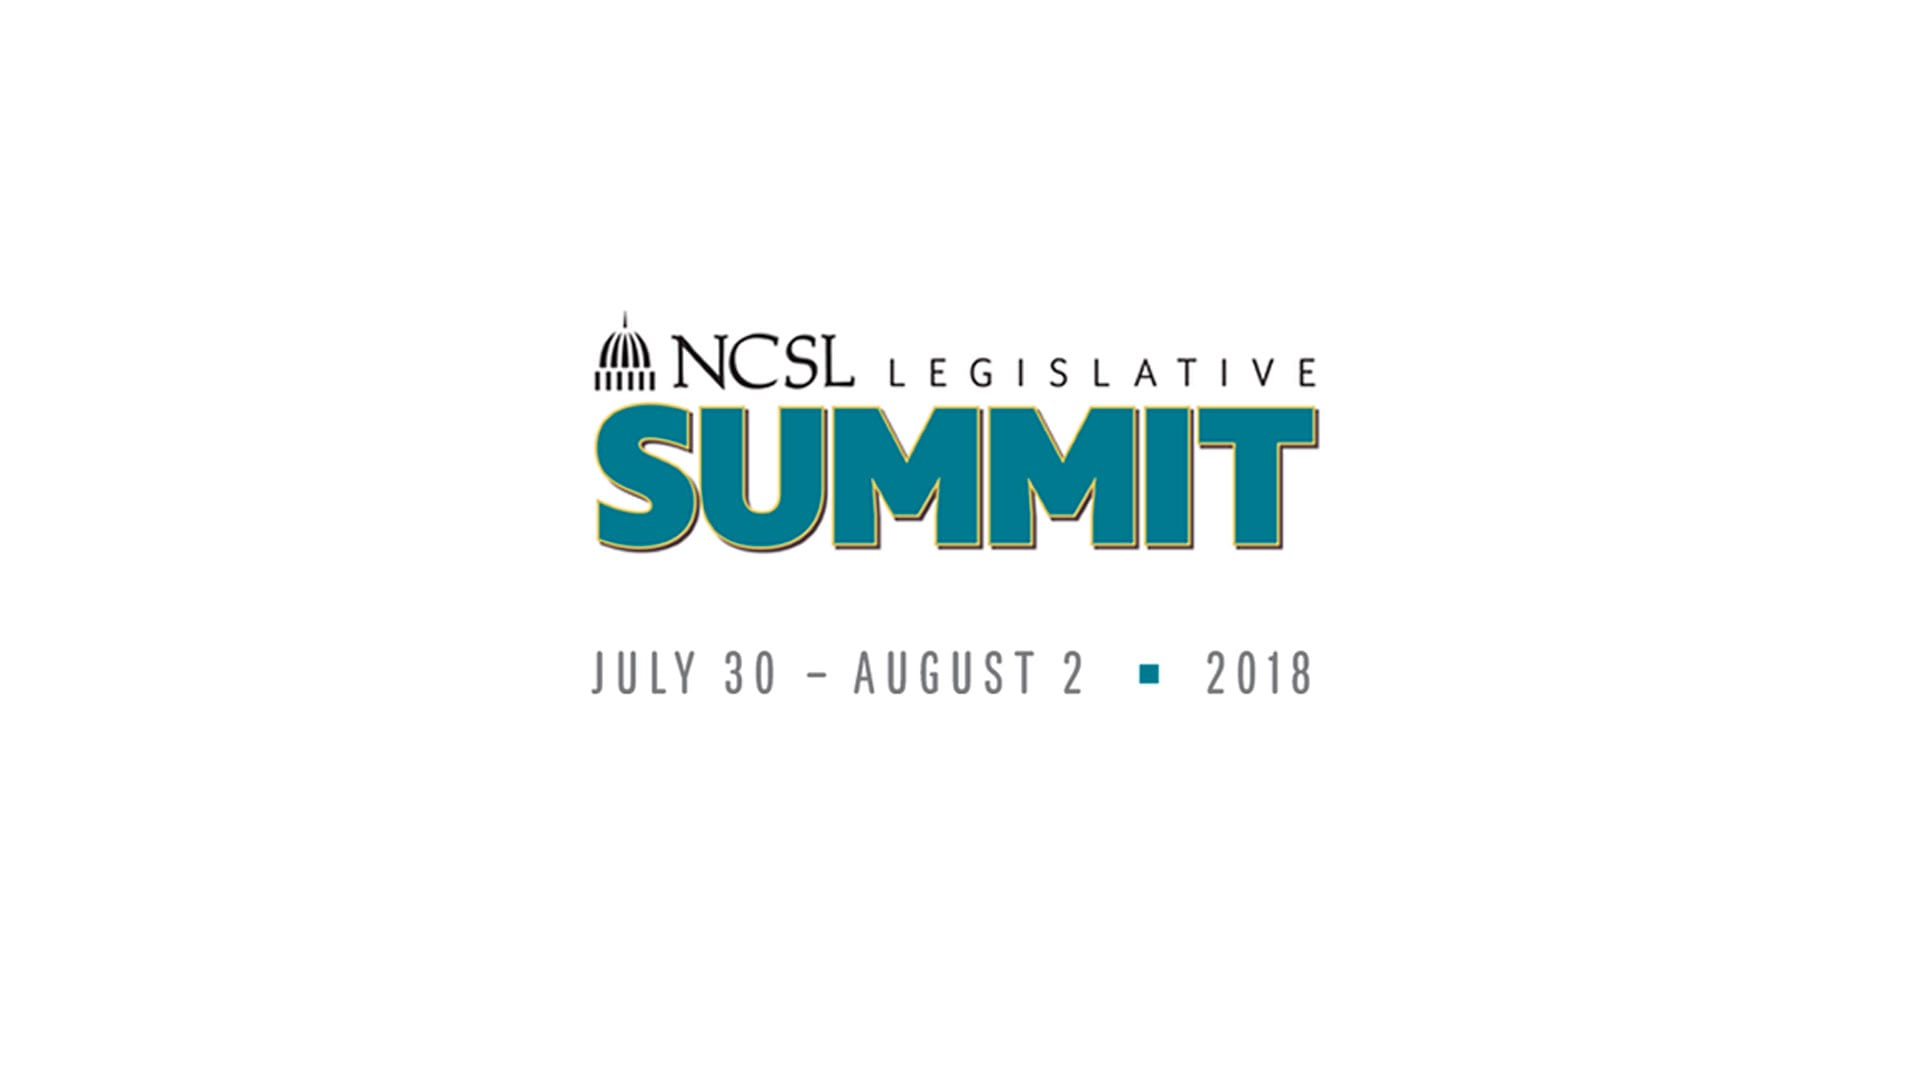 National Conference of State Legislatures (NCSL)